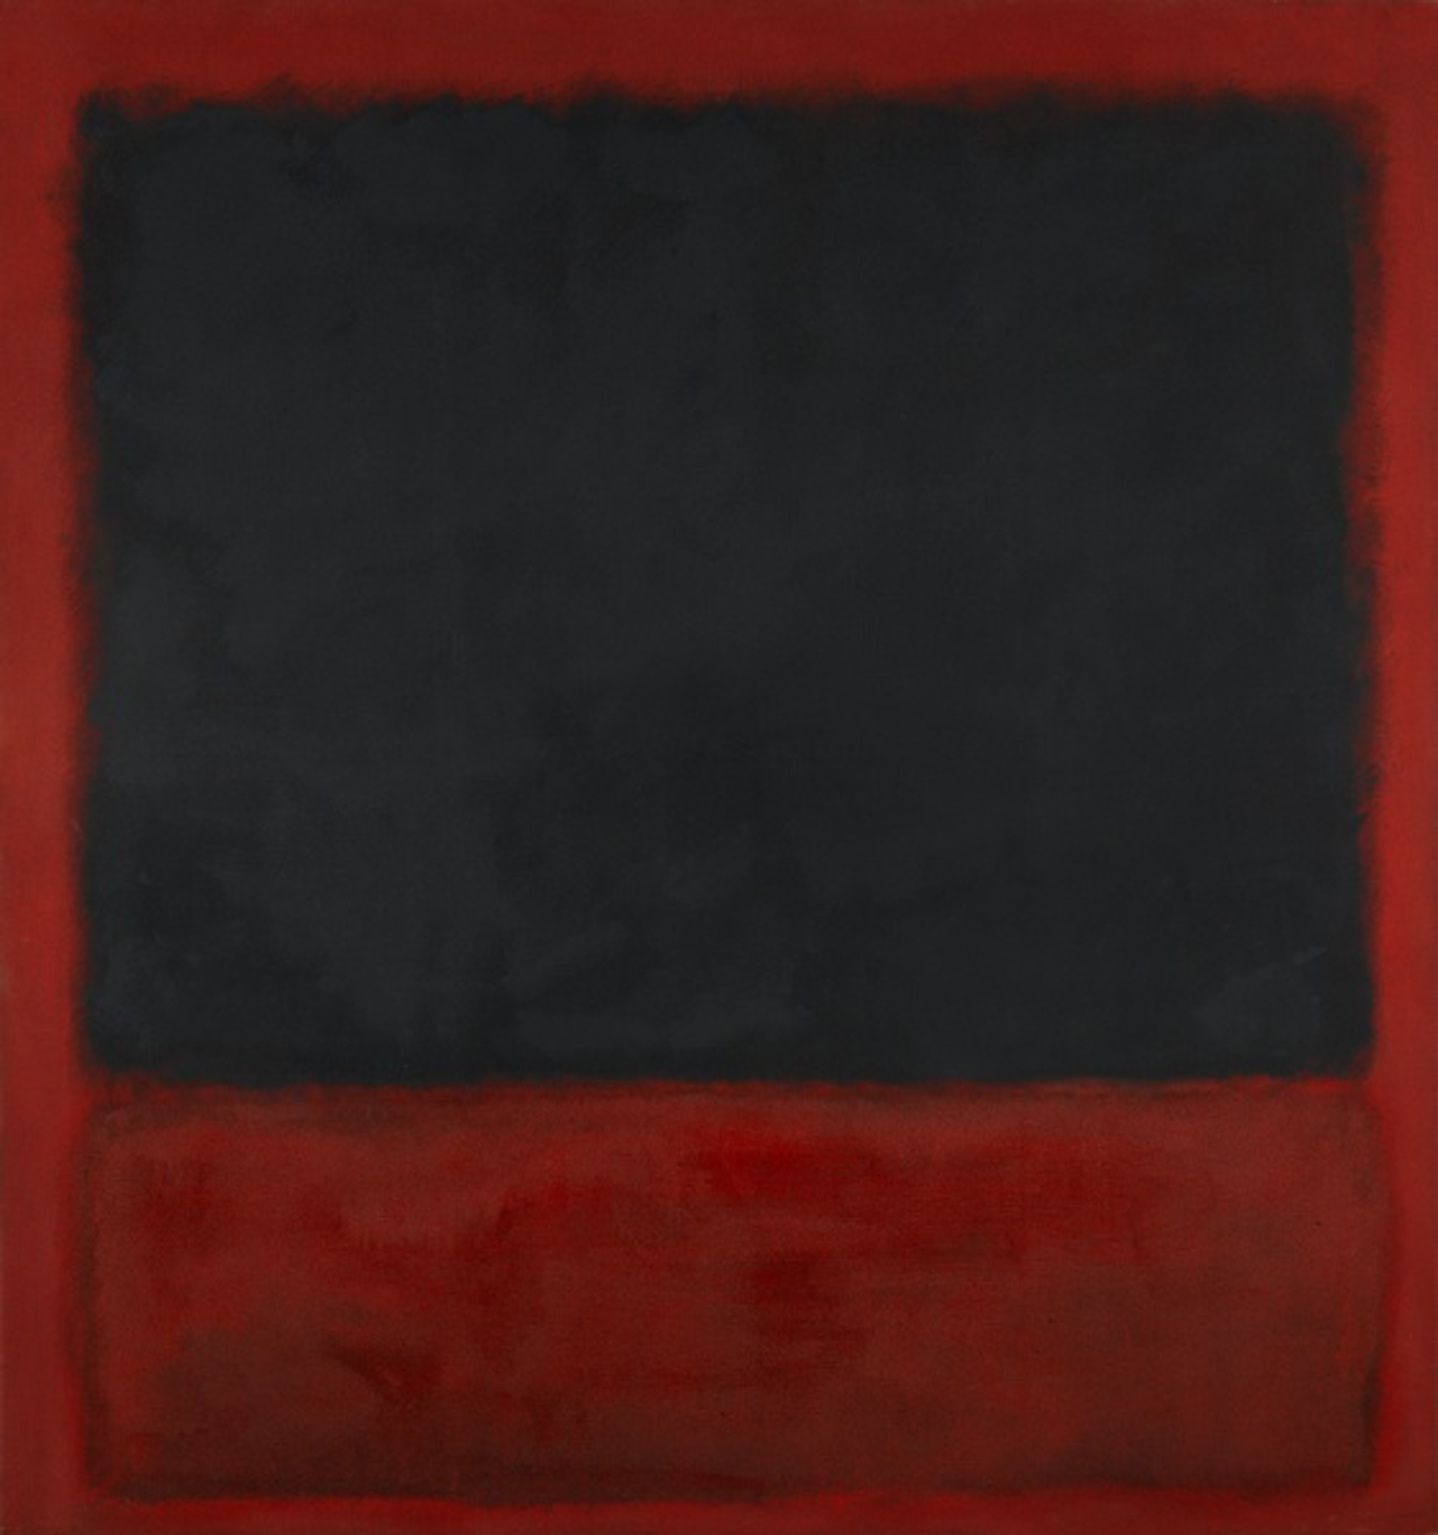 Untitled (Black, Red over Black, on Red), 1964, h/t, 205 x 193 cm, Centre Georges Pompidou.